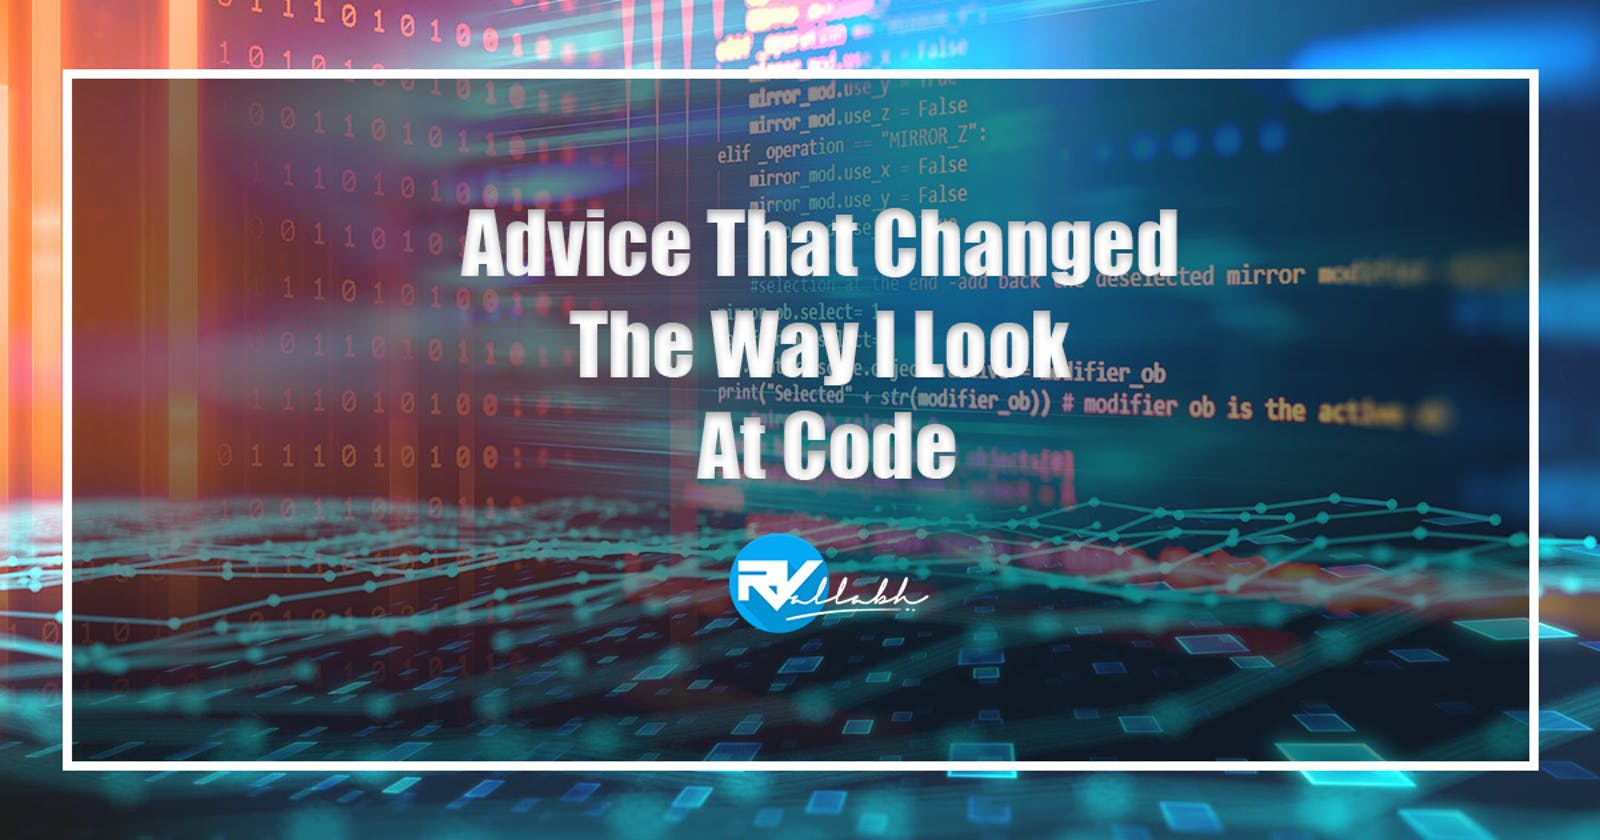 Advice That Changed The Way I Look At Code